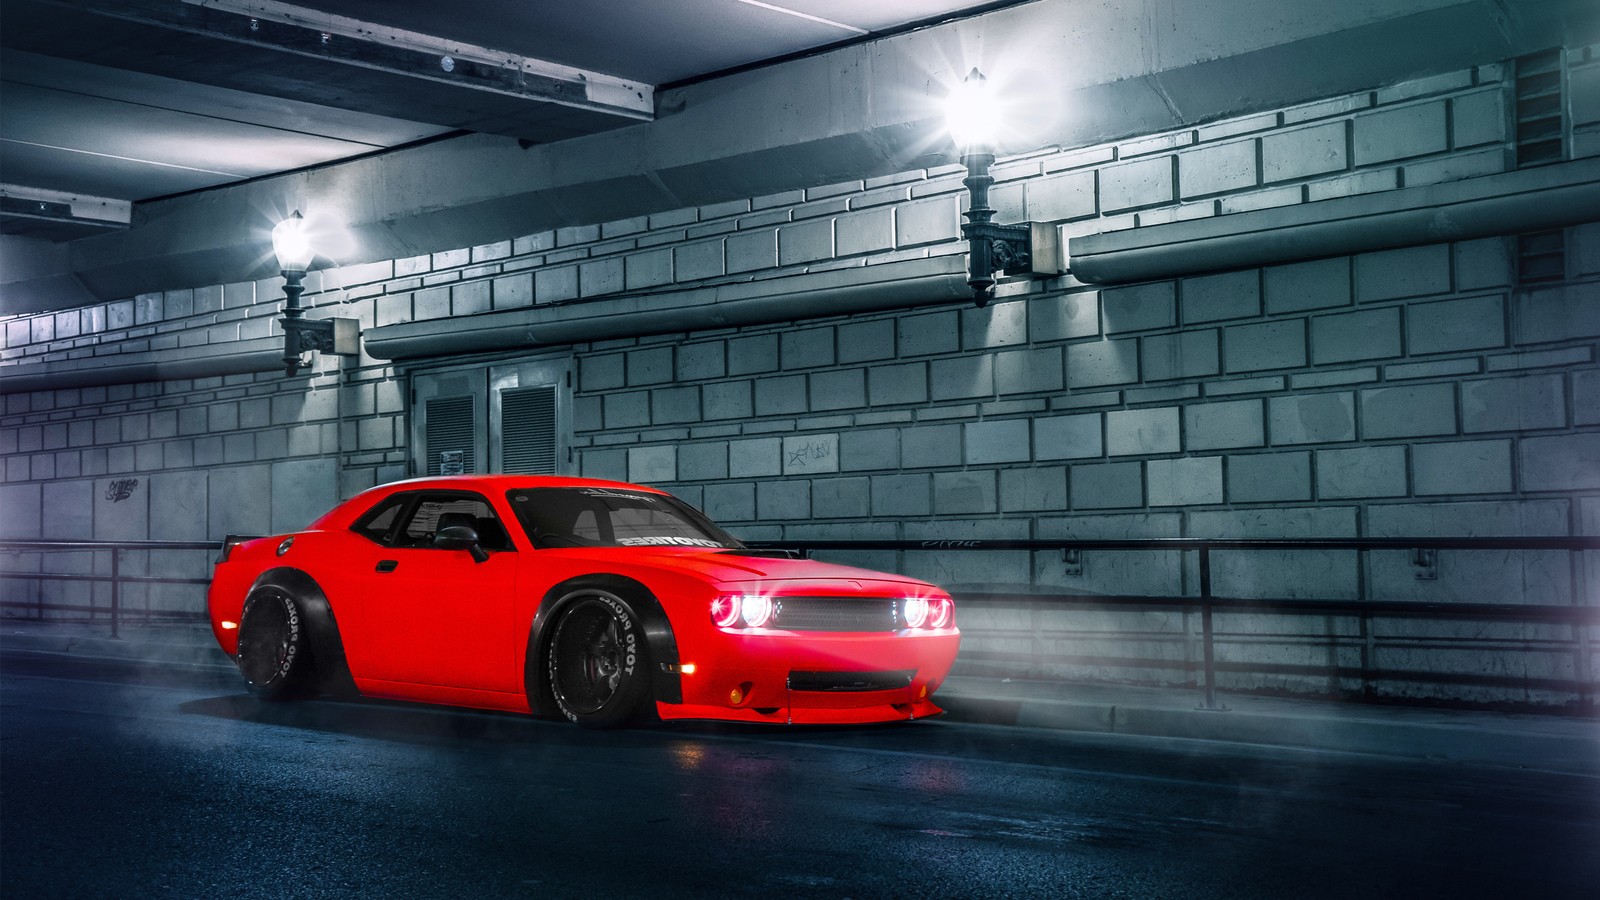 2015 Dodge Challenger SRT (1600x900)